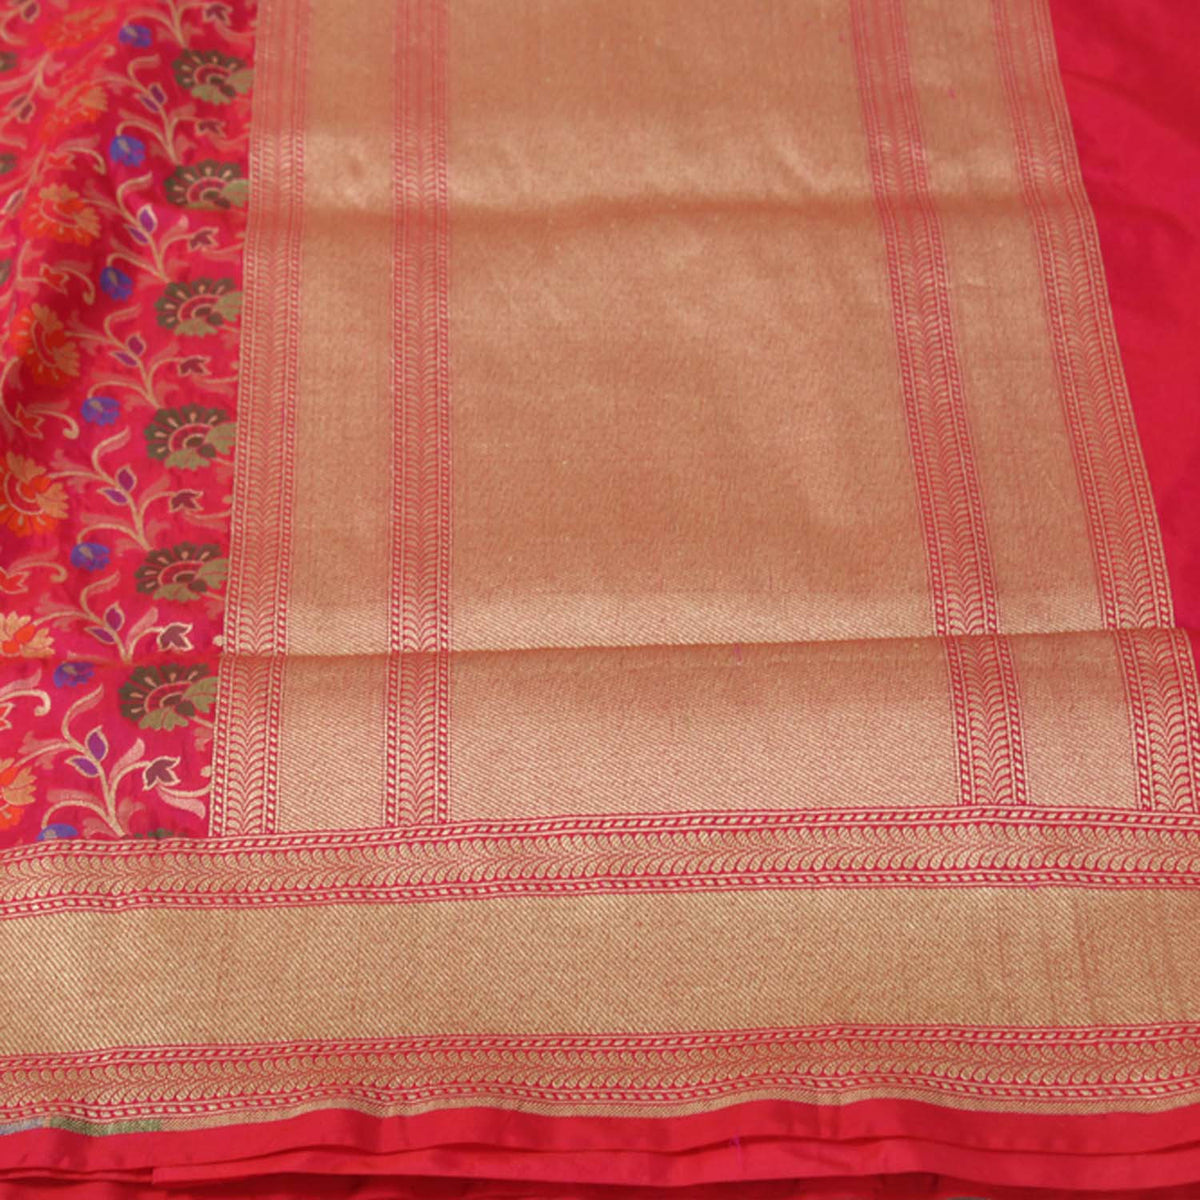 Orange-Indian Pink Pure Silk Georgette Banarasi Handloom Saree - Tilfi - 3